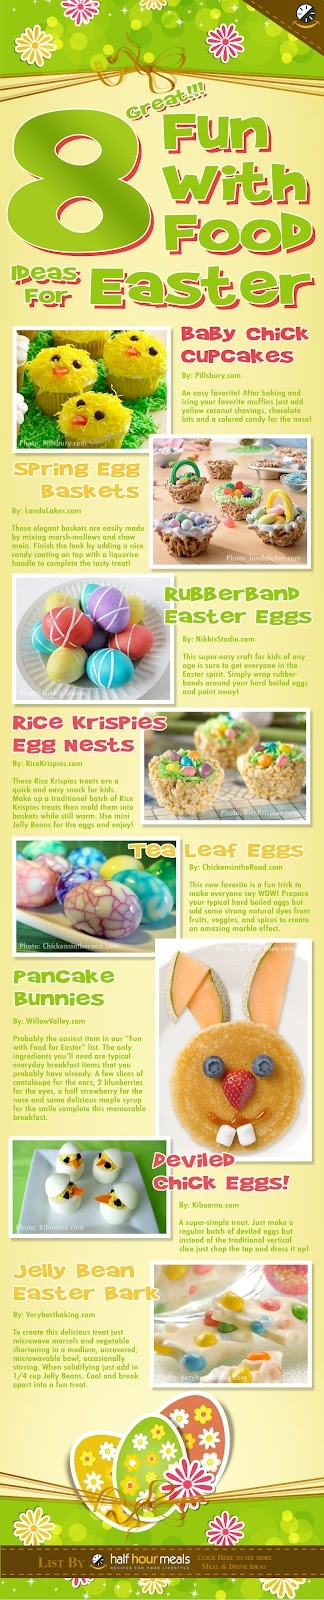 8 Great Ideas for Fun Easter Foods!